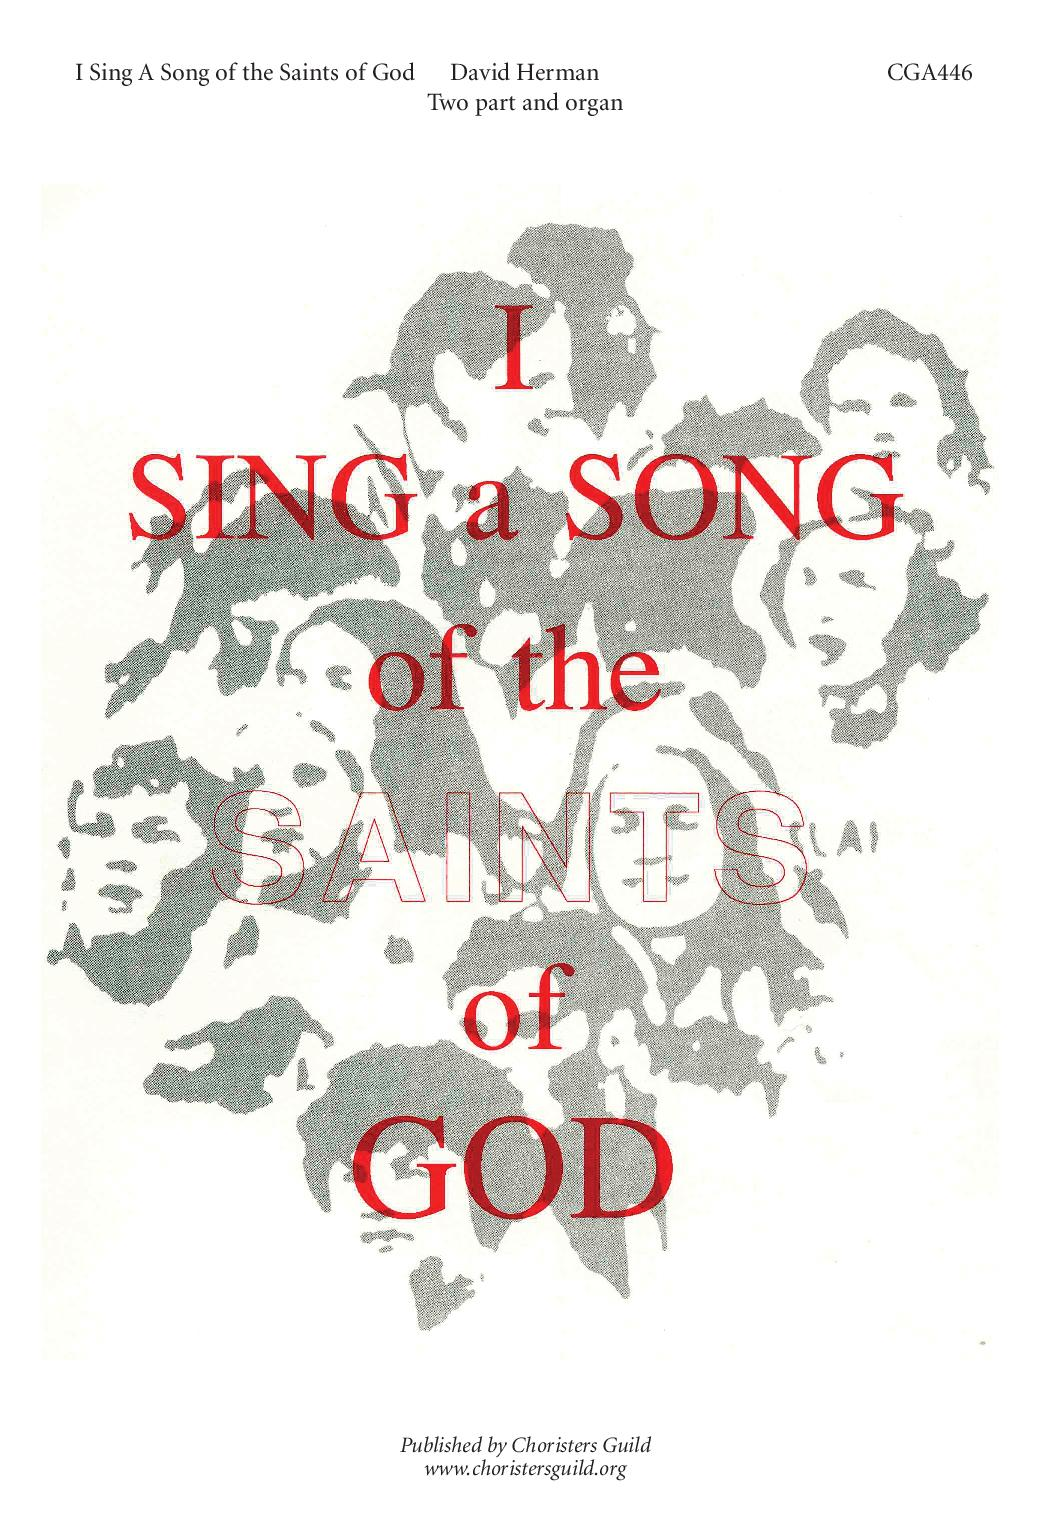 Sing a Song of the Saints of God